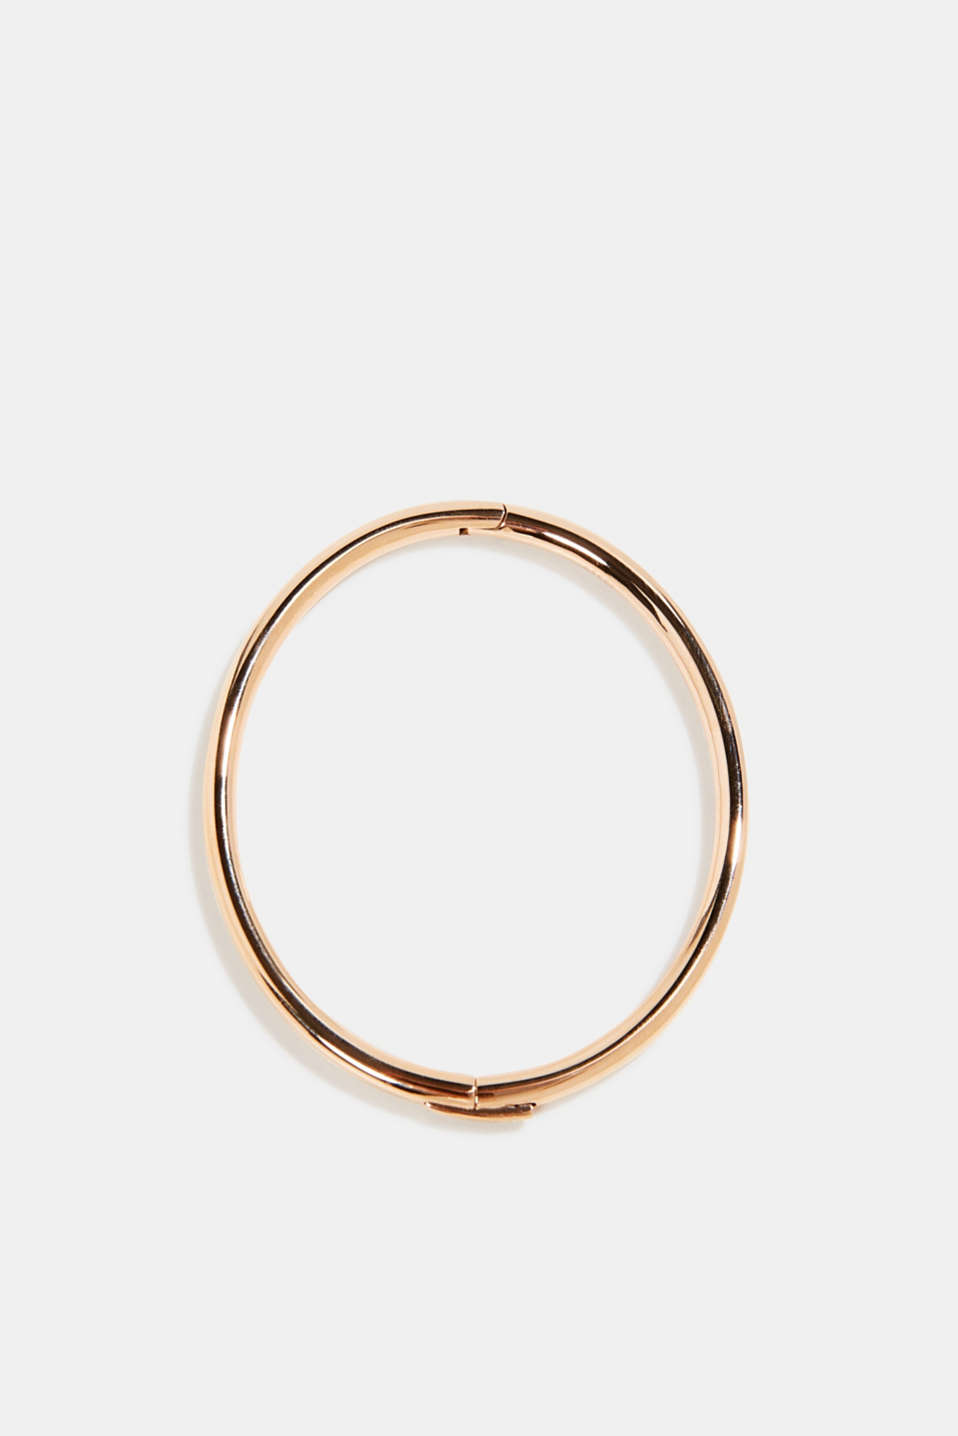 Esprit - Gold-plated bangle made of stainless steel